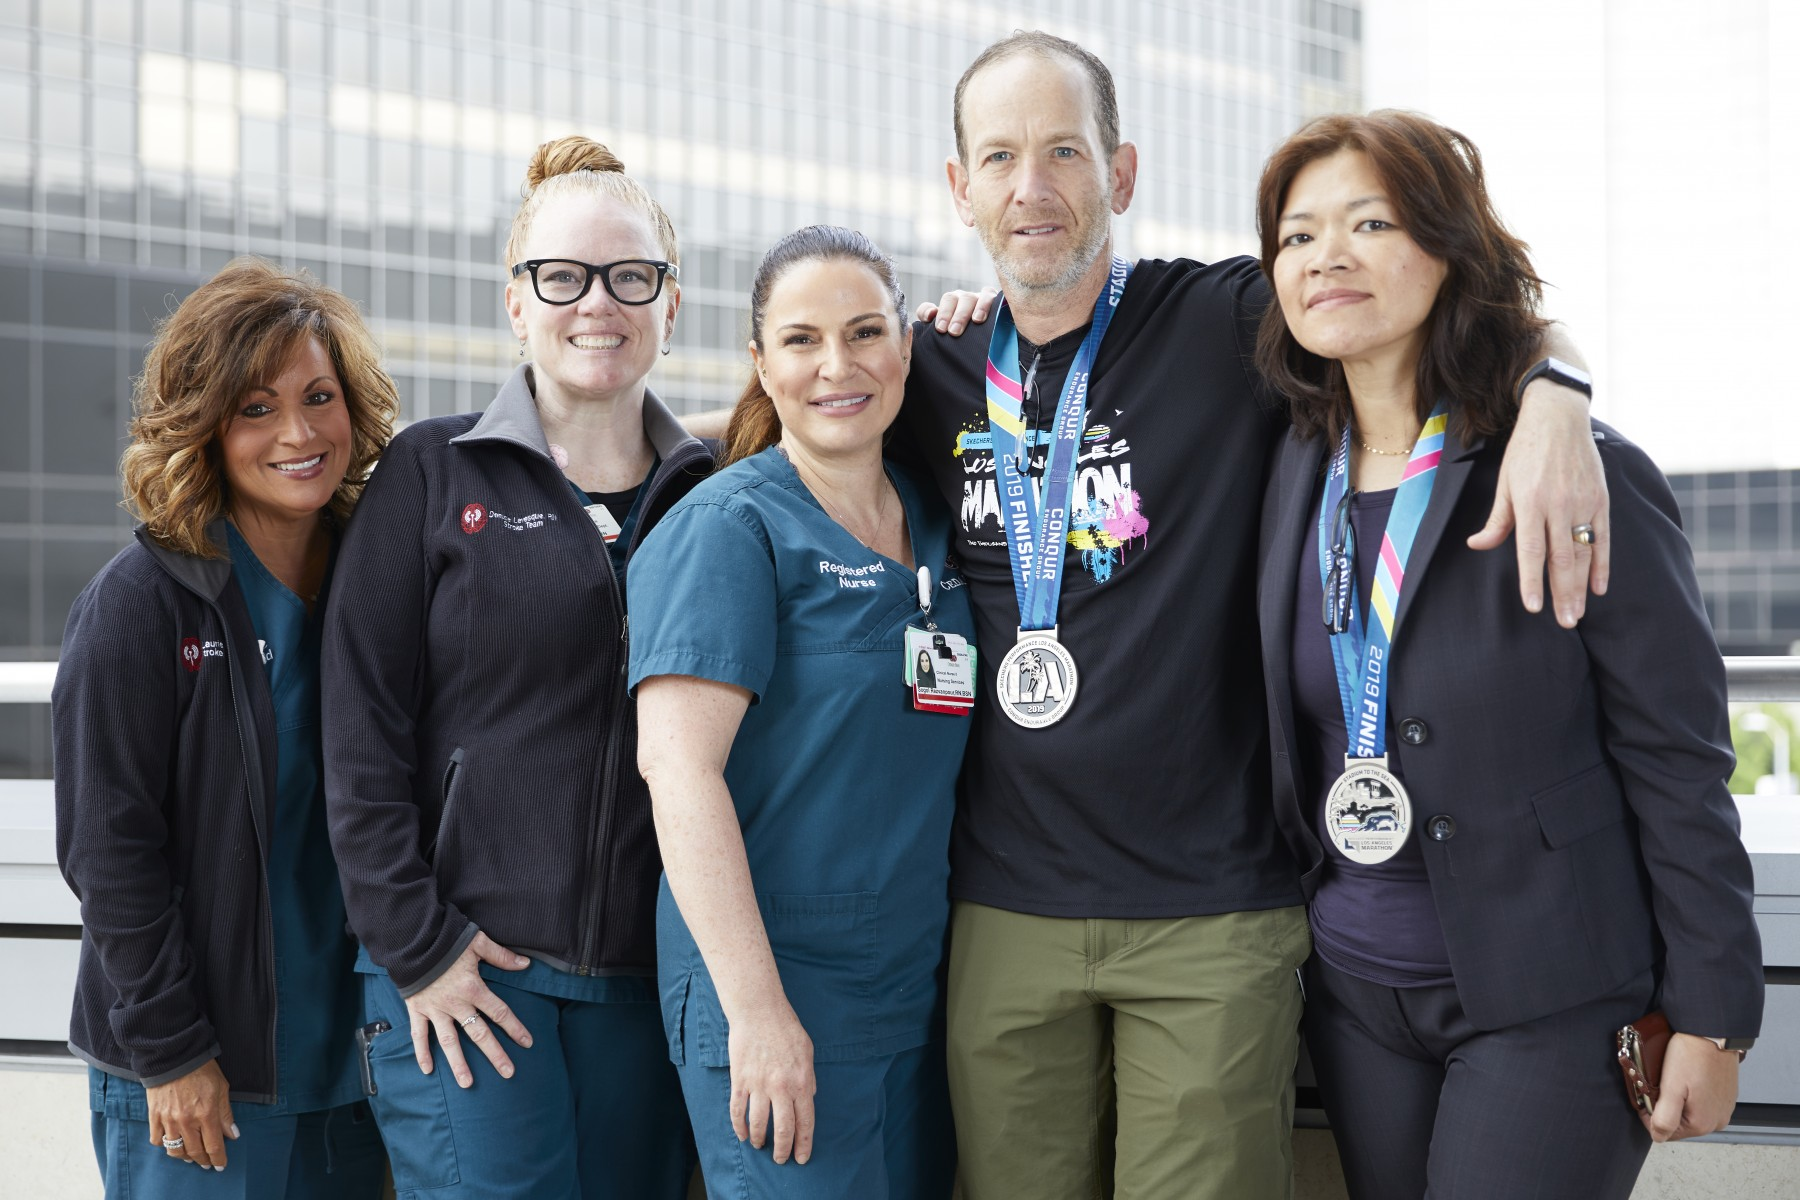 Stroke patient Gregory Rutchik with members of his care team. From left to right, Laurie Paletz, RN; Denise Levesque, RN; Sogol Rezvanpour, RN; Rutchik and Marianne Carlota, RN. Photo by Cedars-Sinai.